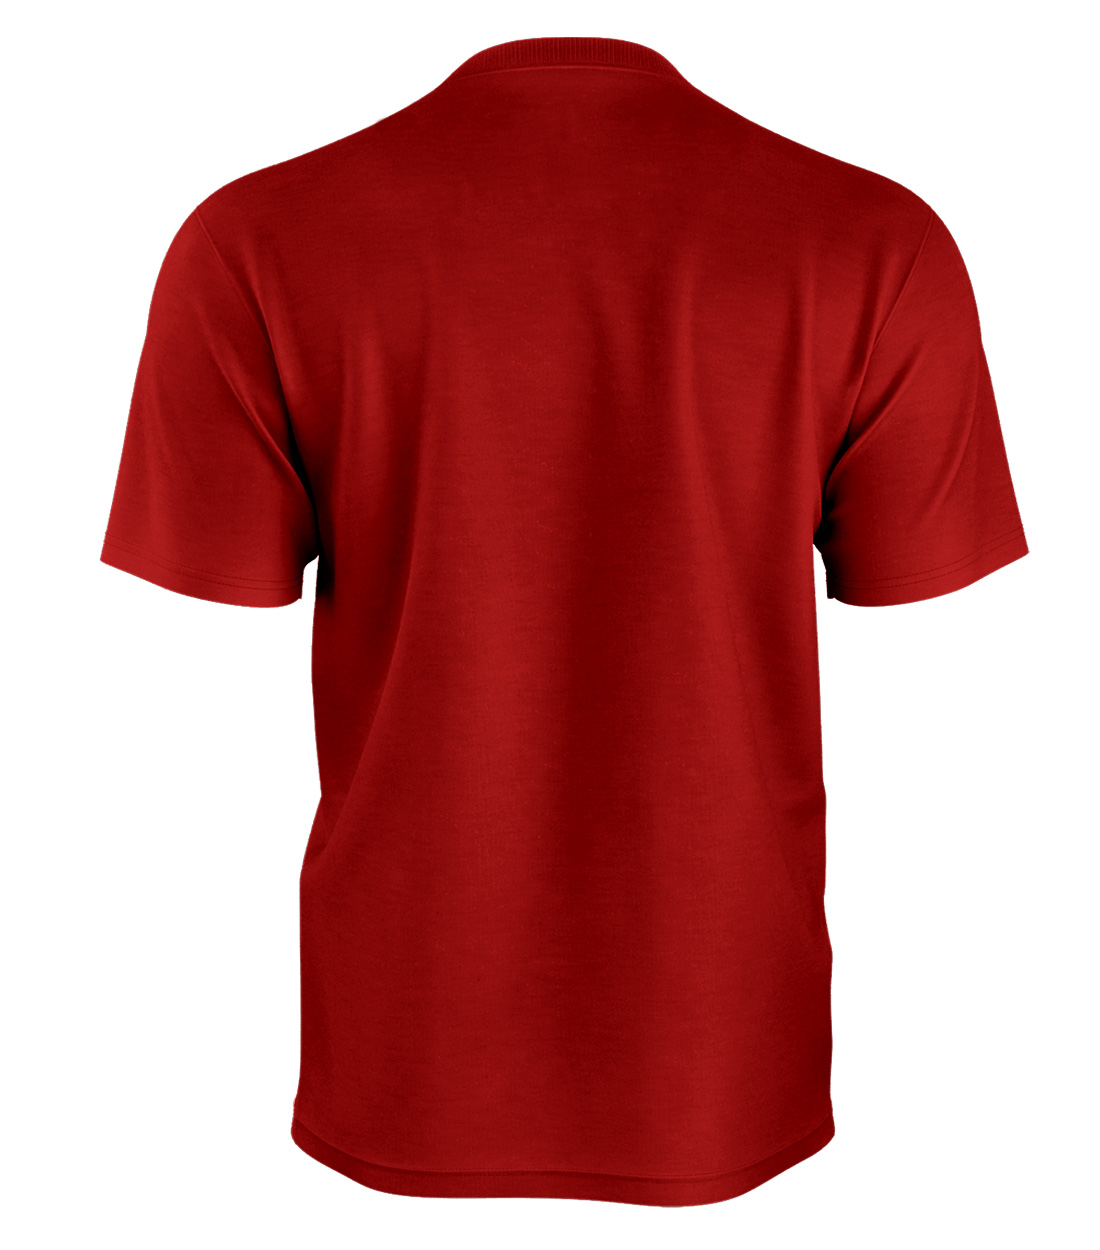 LeBron James Tshirt (TSH-red-145-PLYR-JAMES.23)